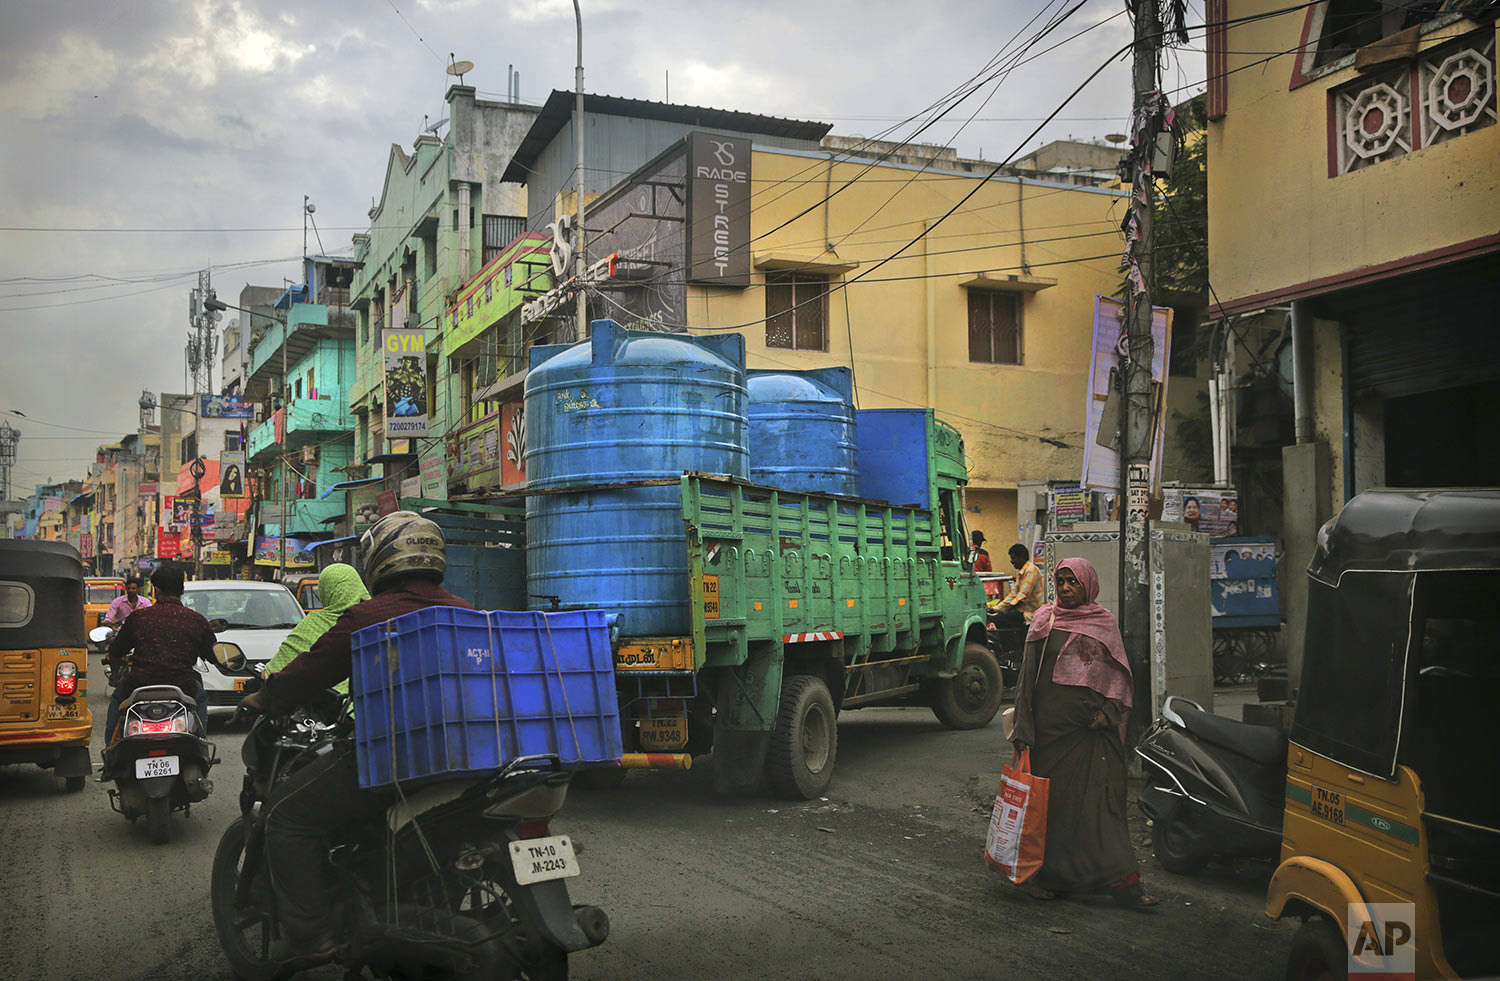 A water truck carrying drinking water arrives in a locality in Chennai in Southern Indian state of Tamil Nadu, Thursday, July 18, 2019. (AP Photo/Manish Swarup)